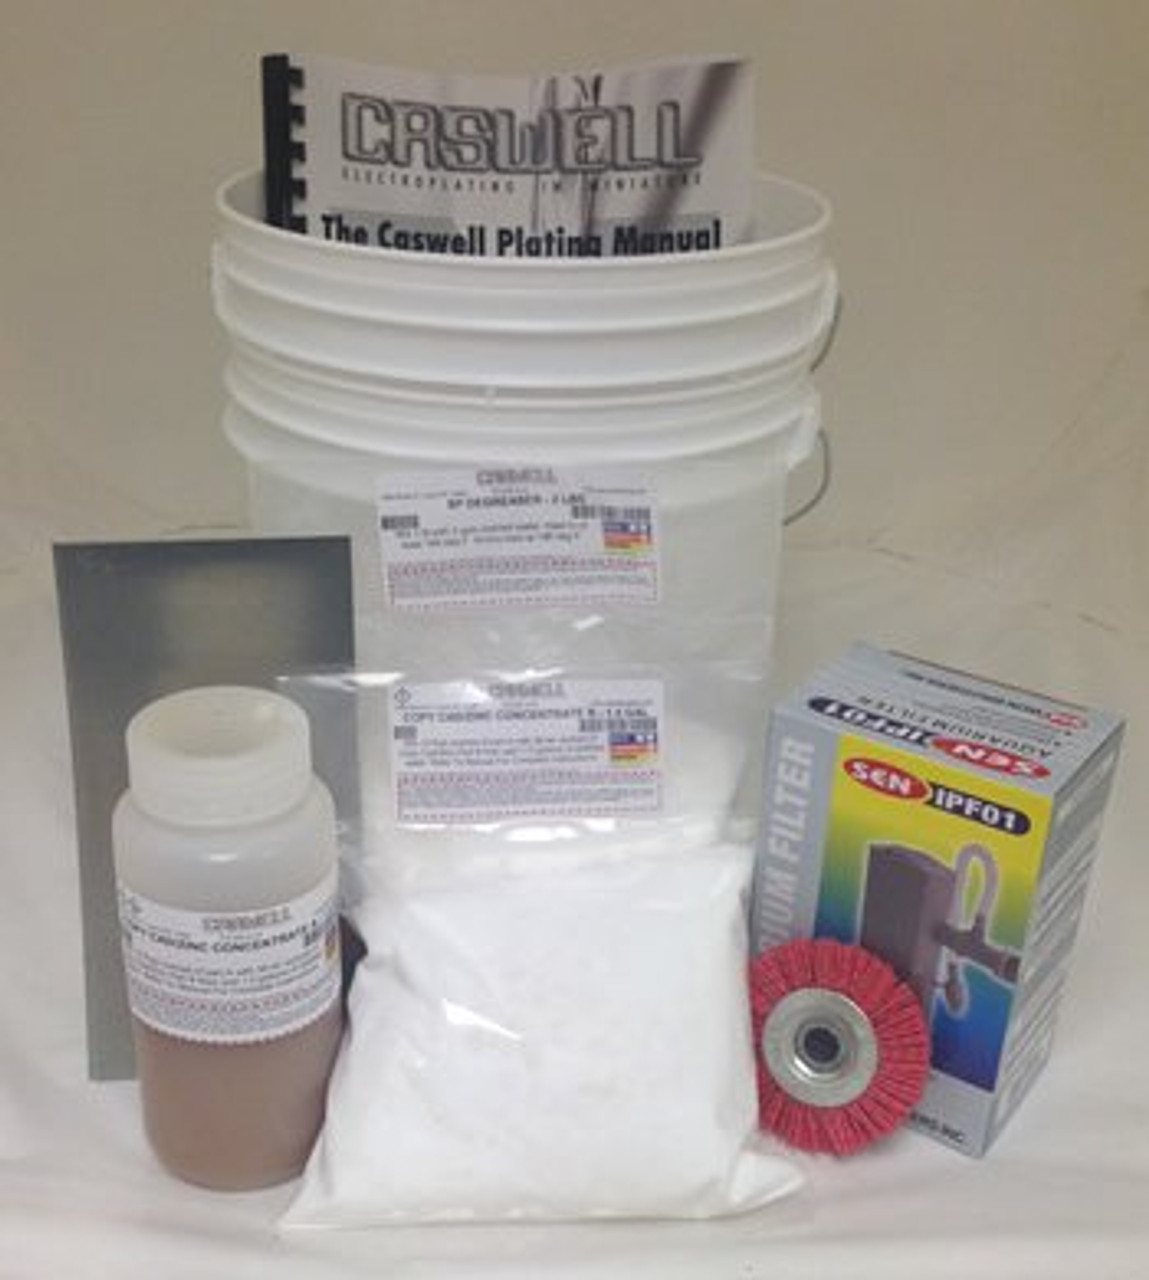 Copy Cad & Zinc Plating Kit - 1.5 Gal